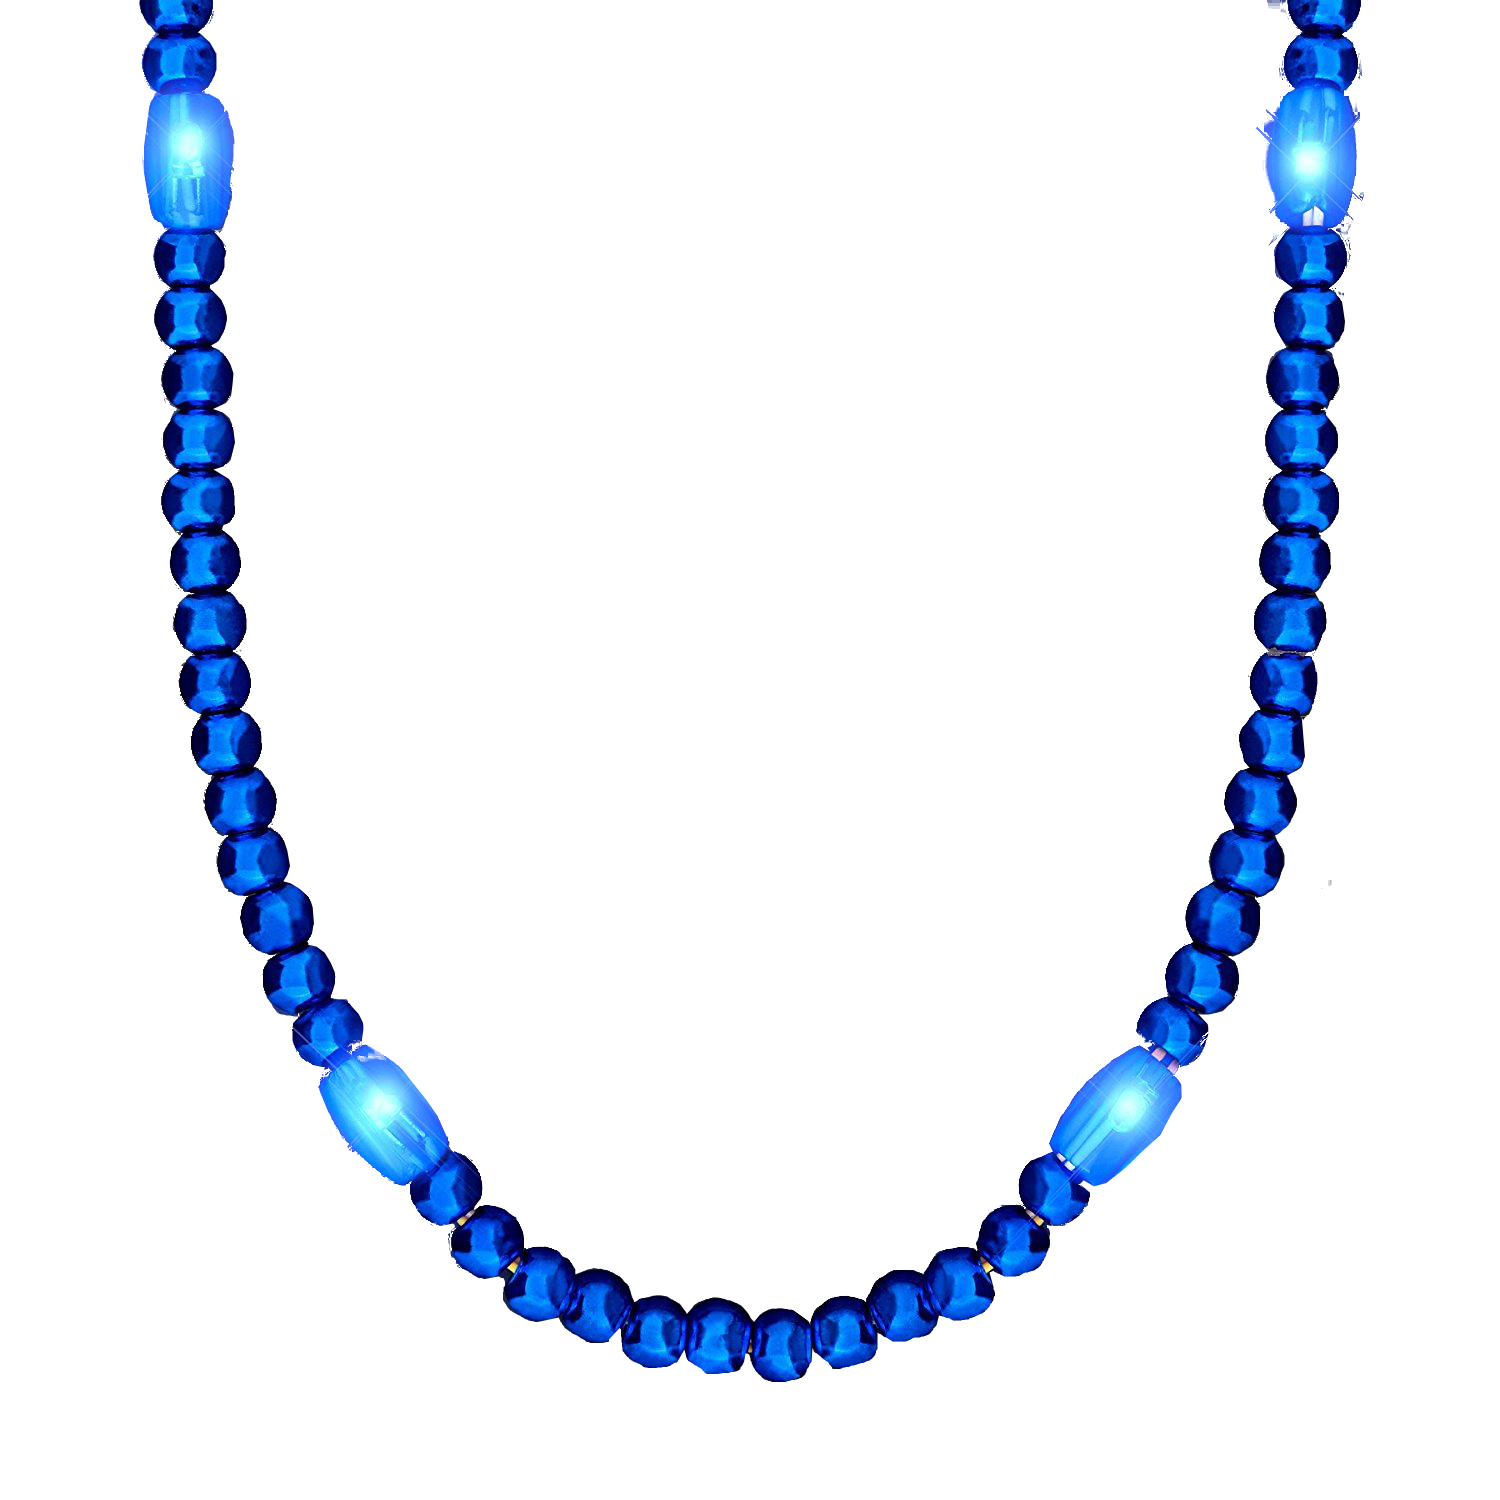 LED Necklace with Blue Beads 4th of July